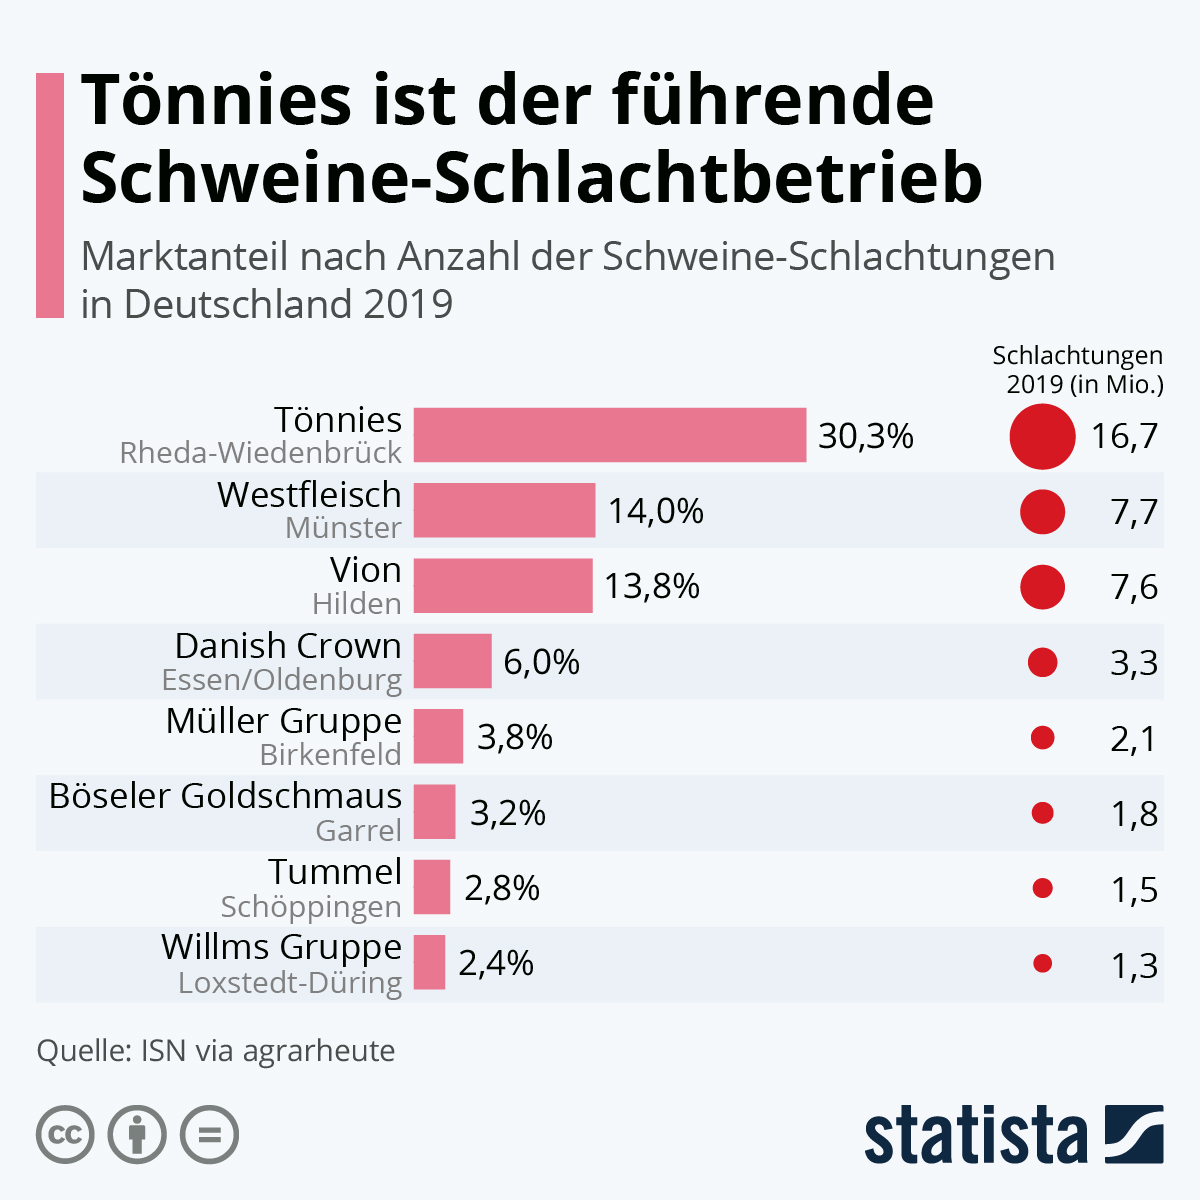 weitere positive falle bei tonnies